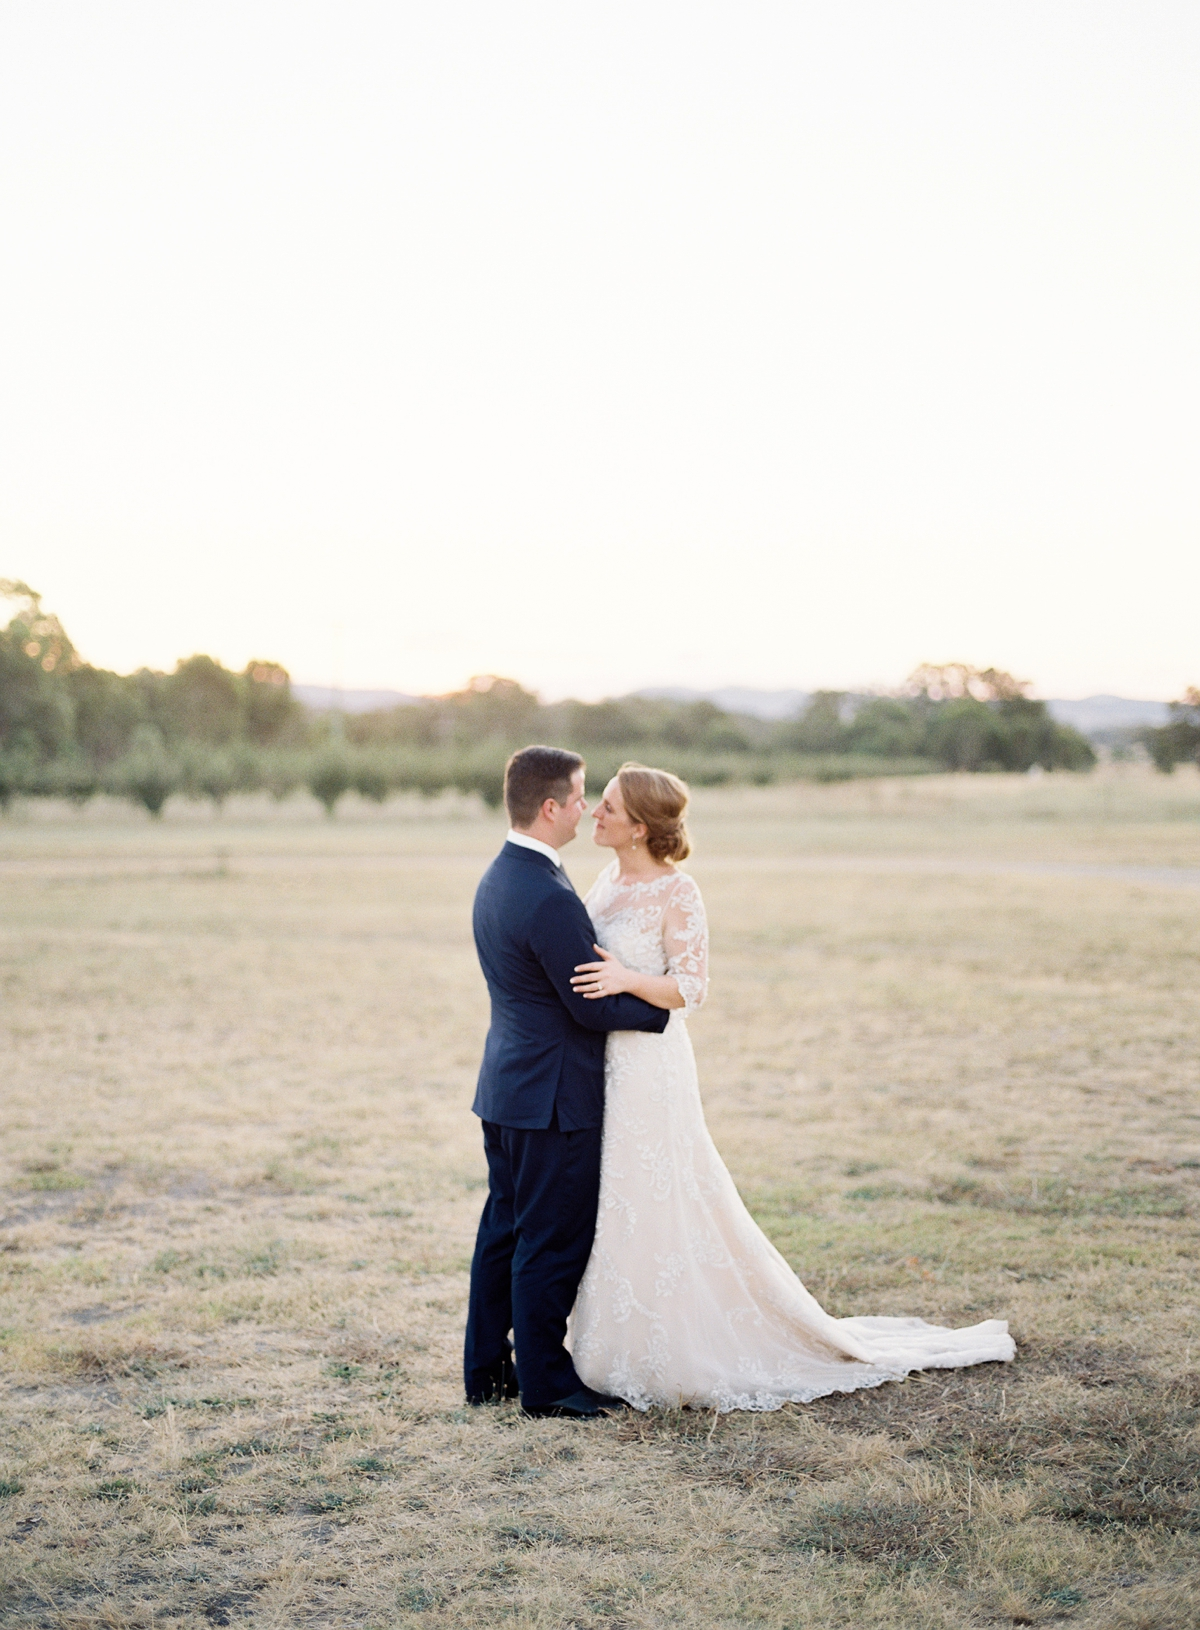 The Vine Grove Mudgee Wedding, Photography by Mr Edwards_1788.jpg